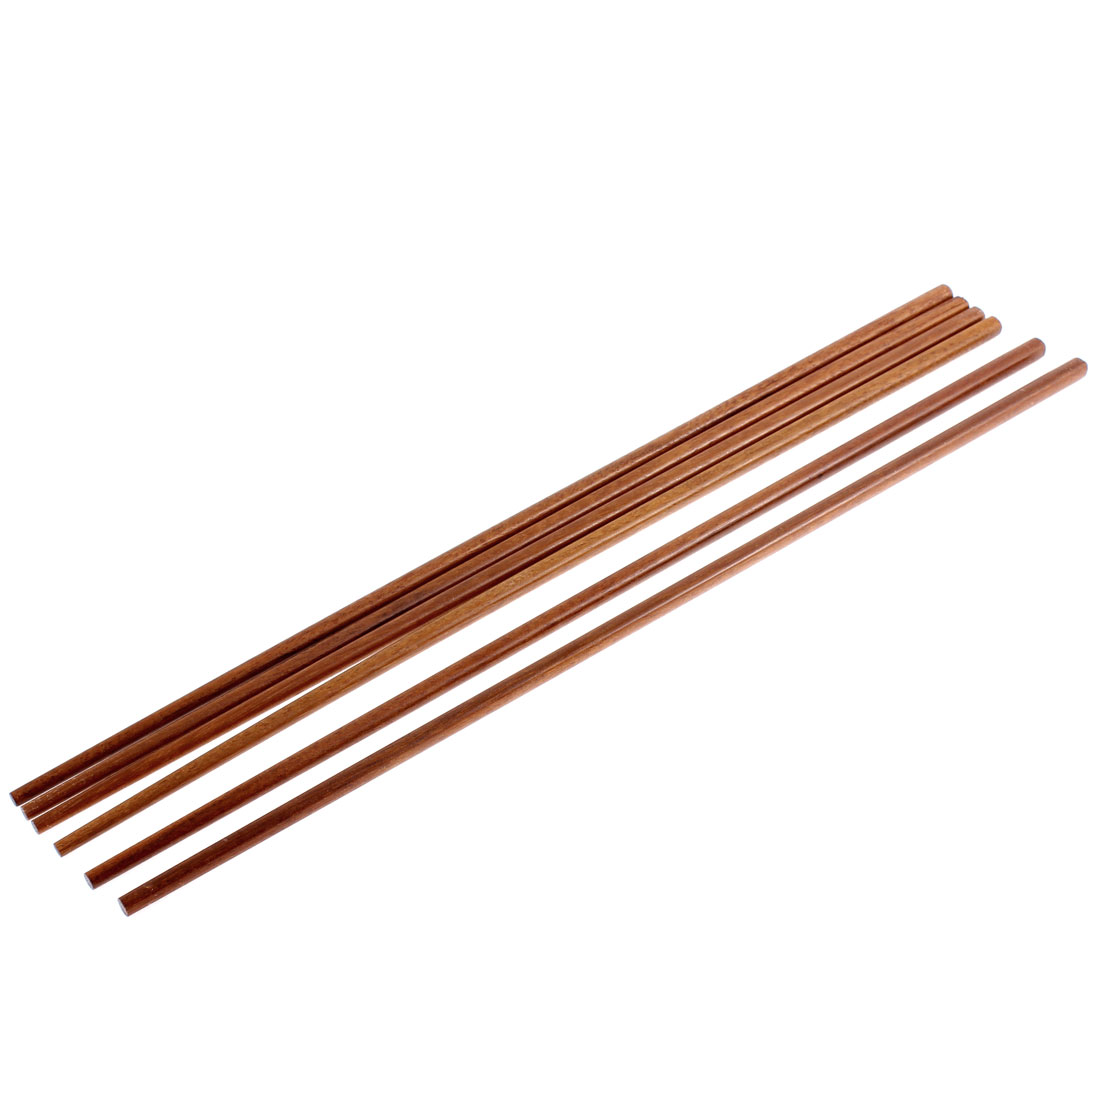 Noodles Cooking Wooden Chopsticks 16.5 Inch Length Brown 3 Pairs